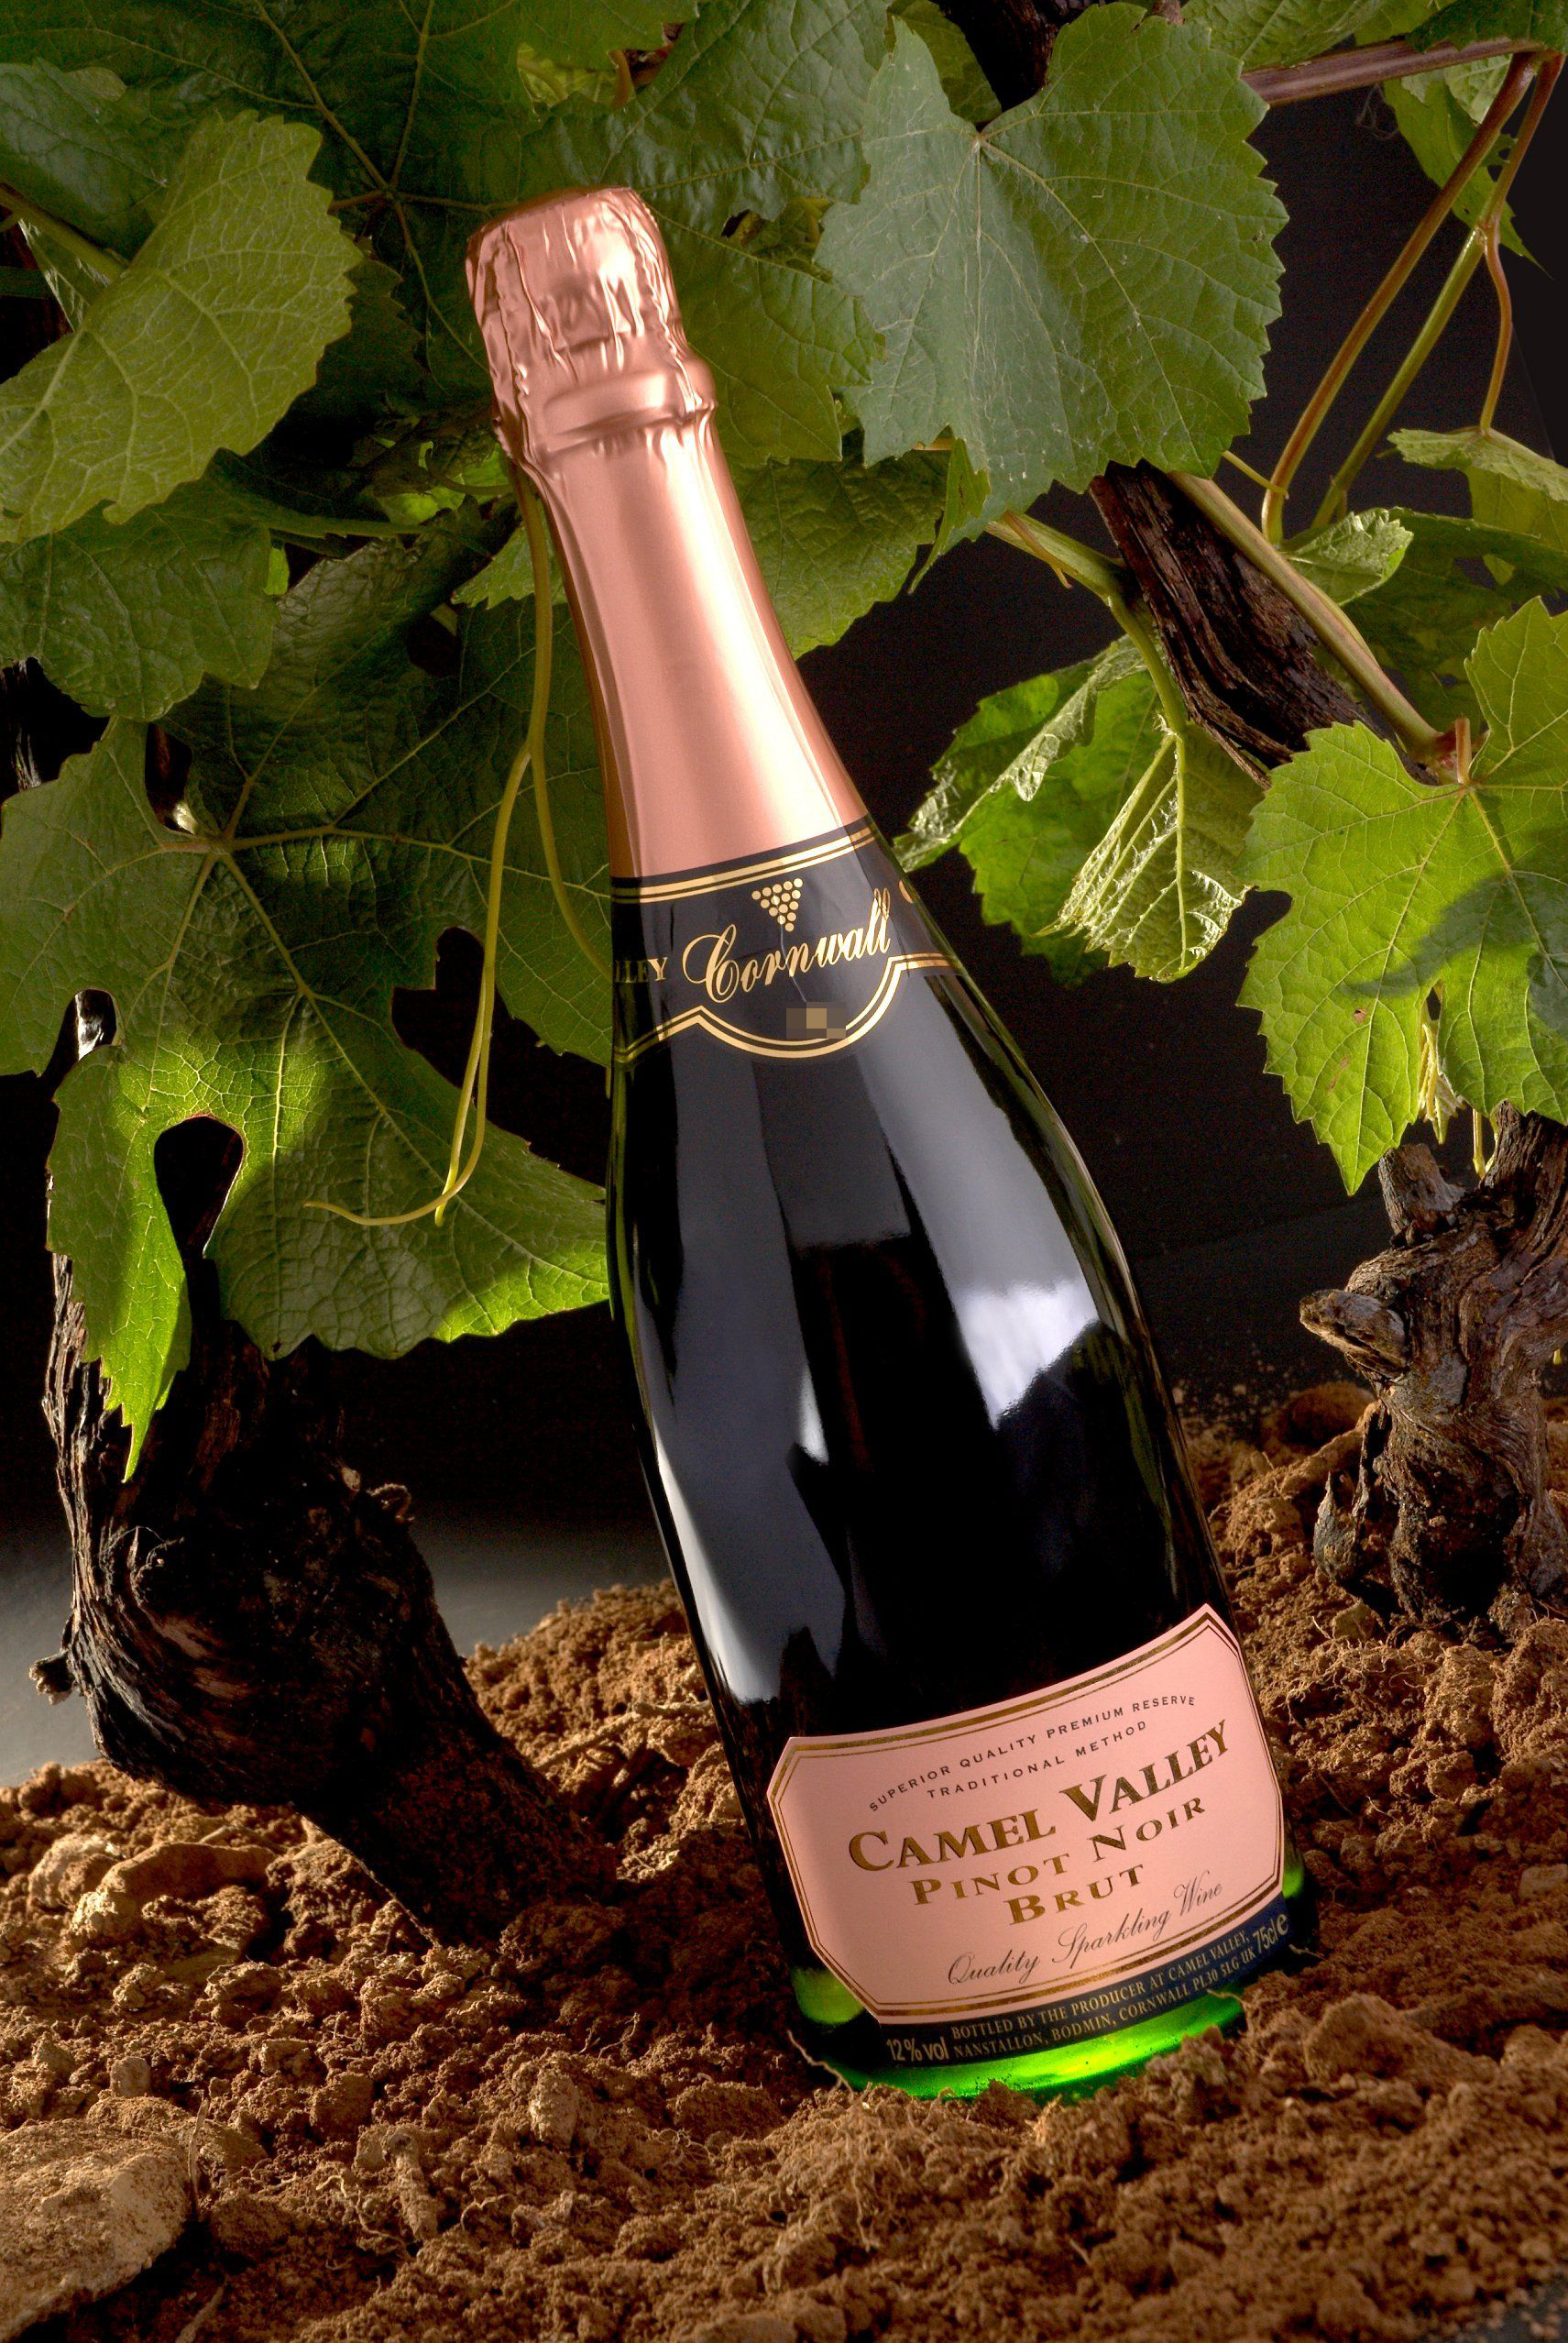 Camel Valley Rose Brut English Sparkling Wine